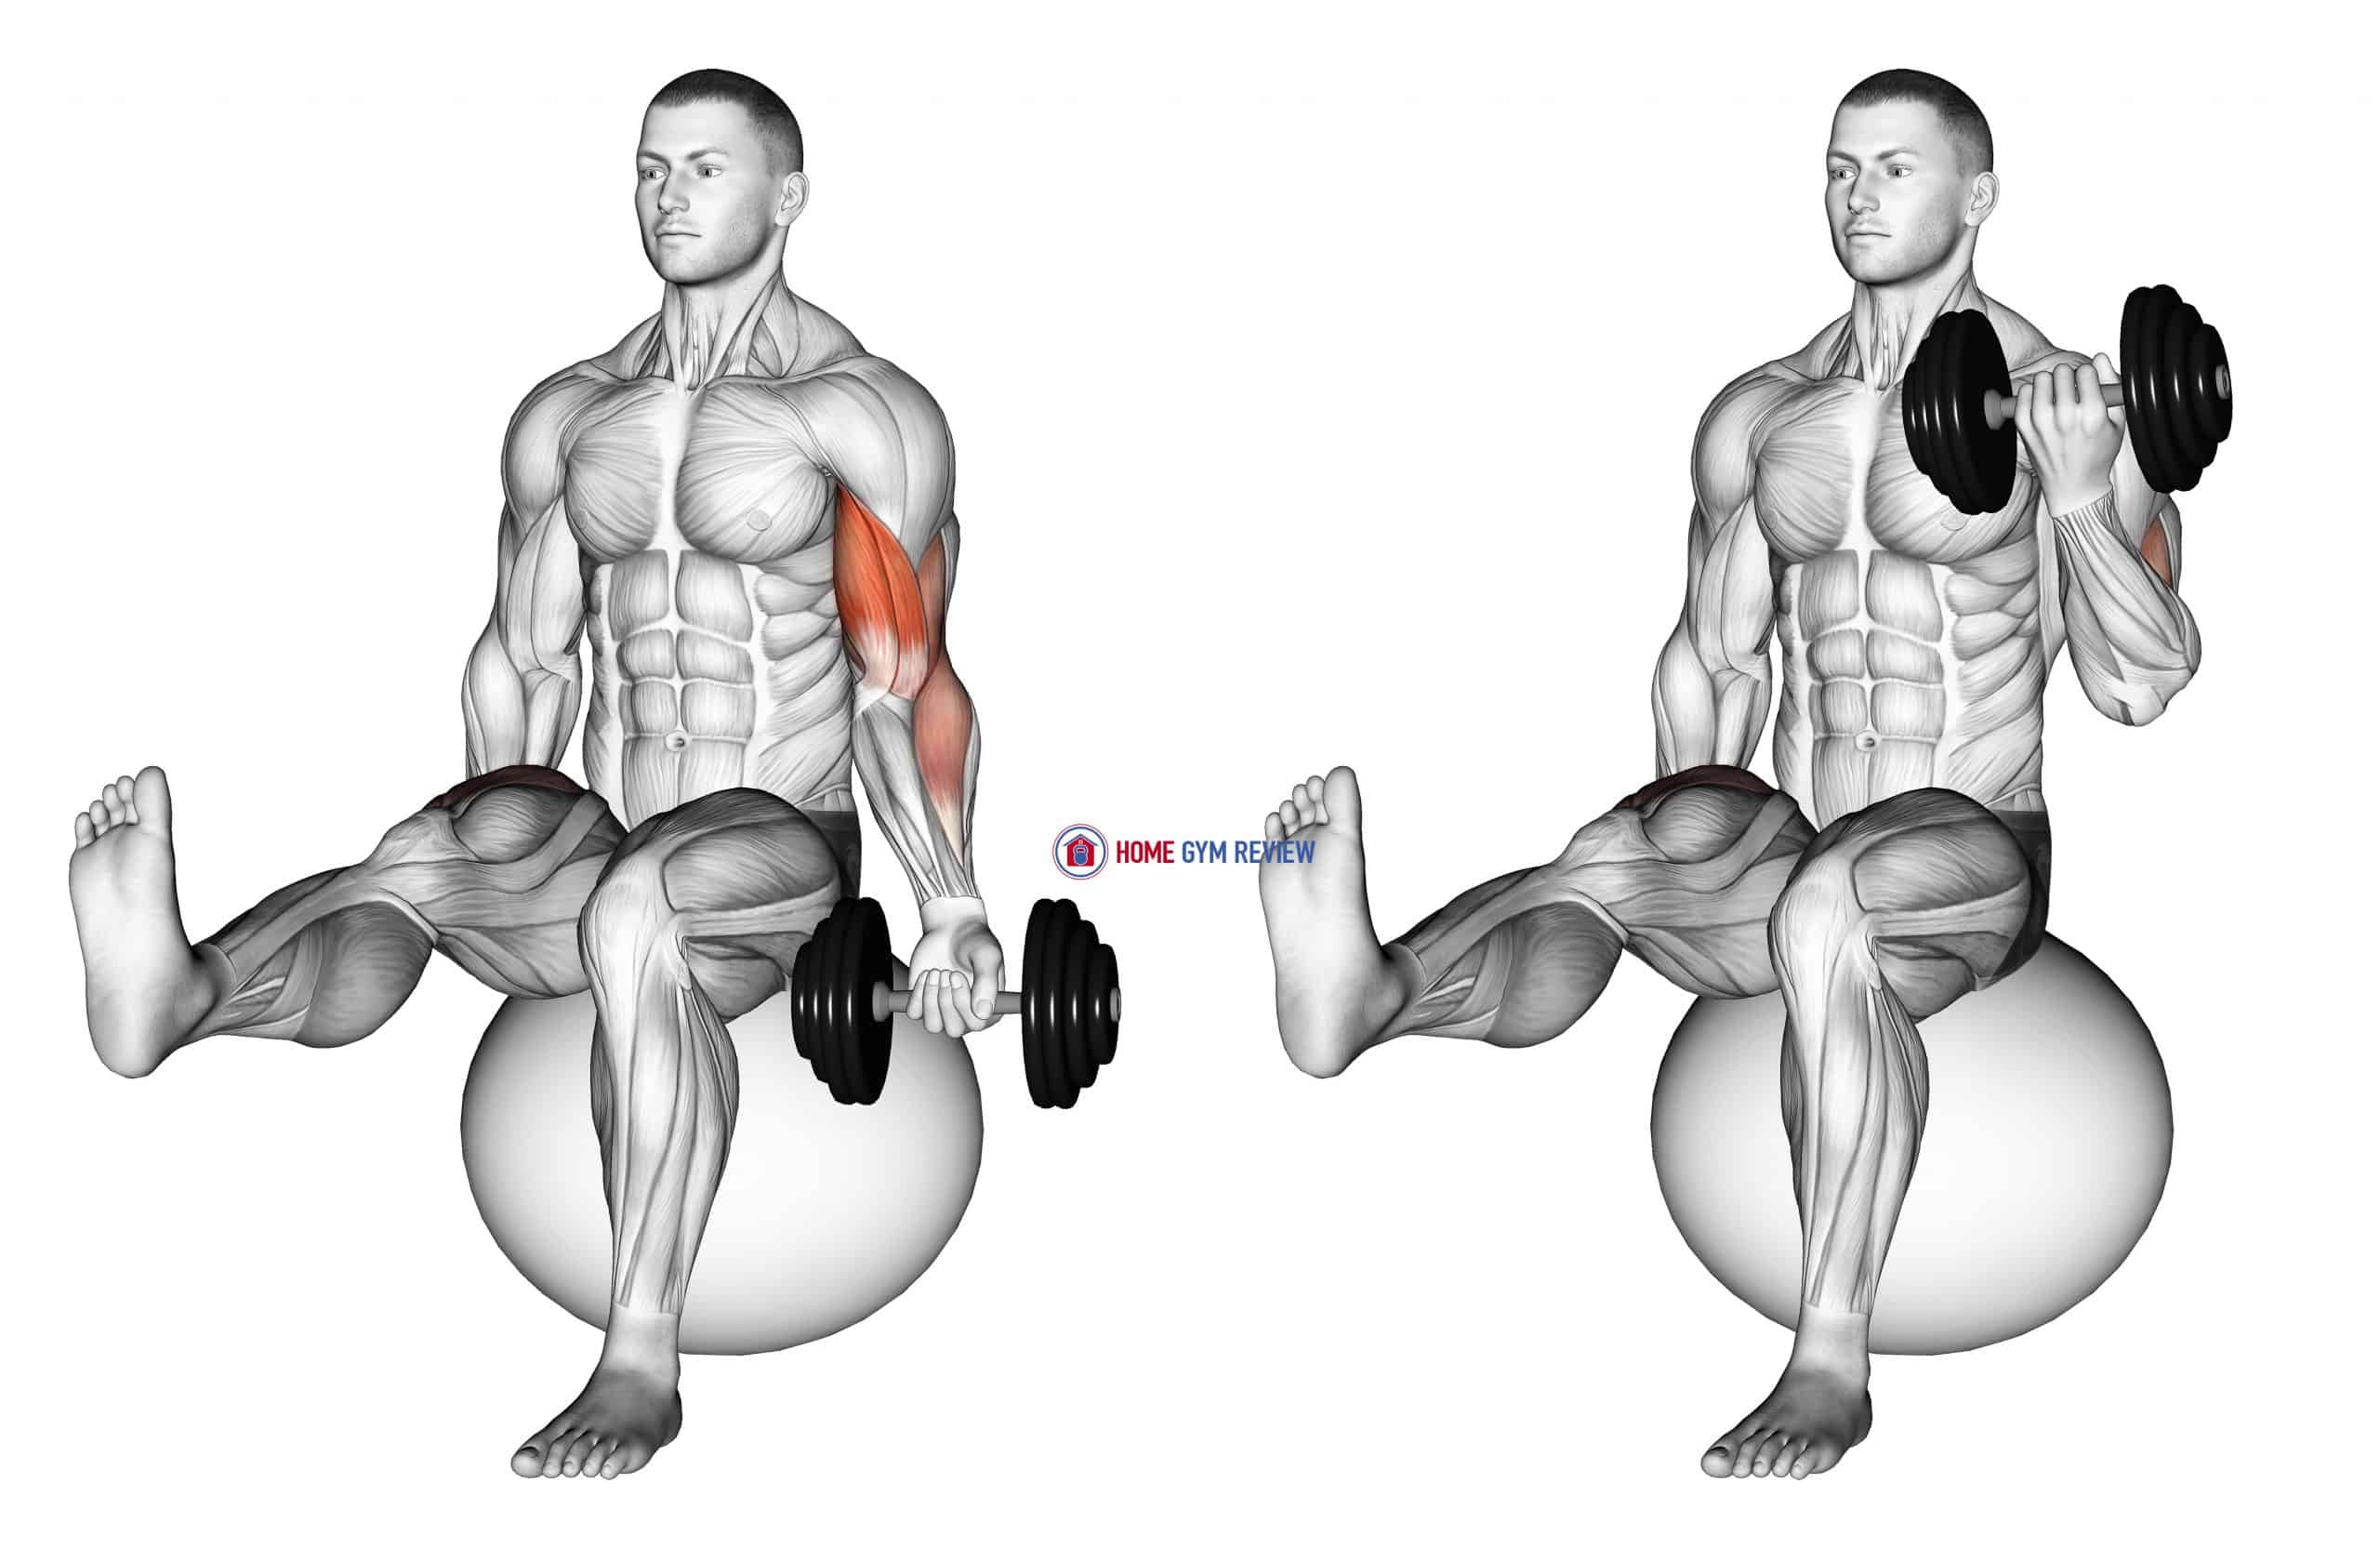 Dumbbell Seated One Arm Bicep Curl on Exercise Ball with Leg Raised